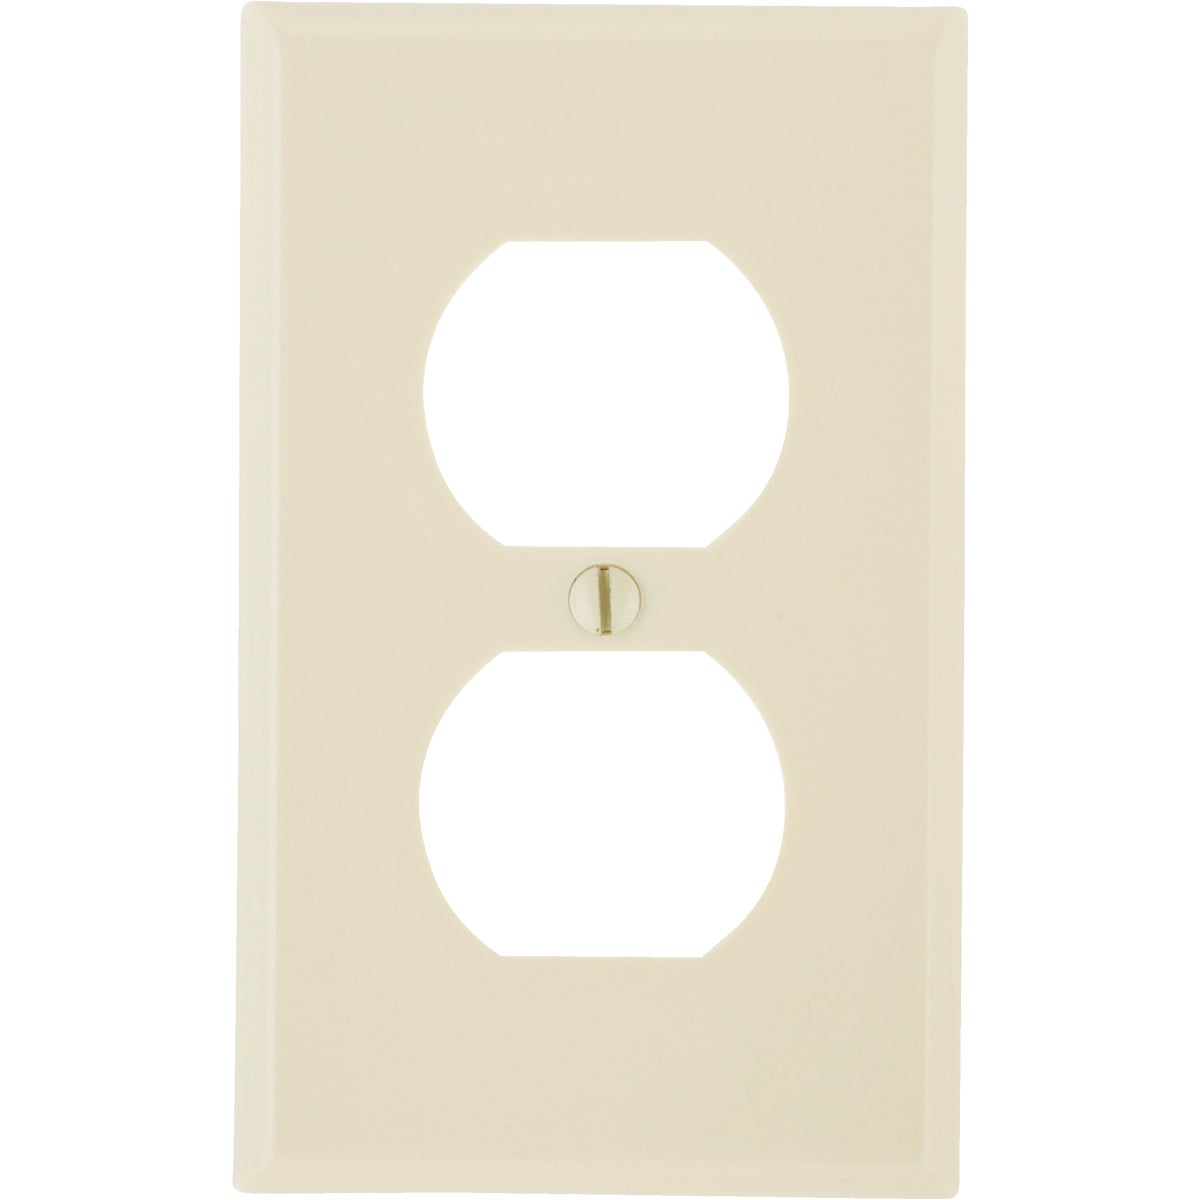 IV OUTLET WALL PLATE - 86003 by Leviton Mfg Co